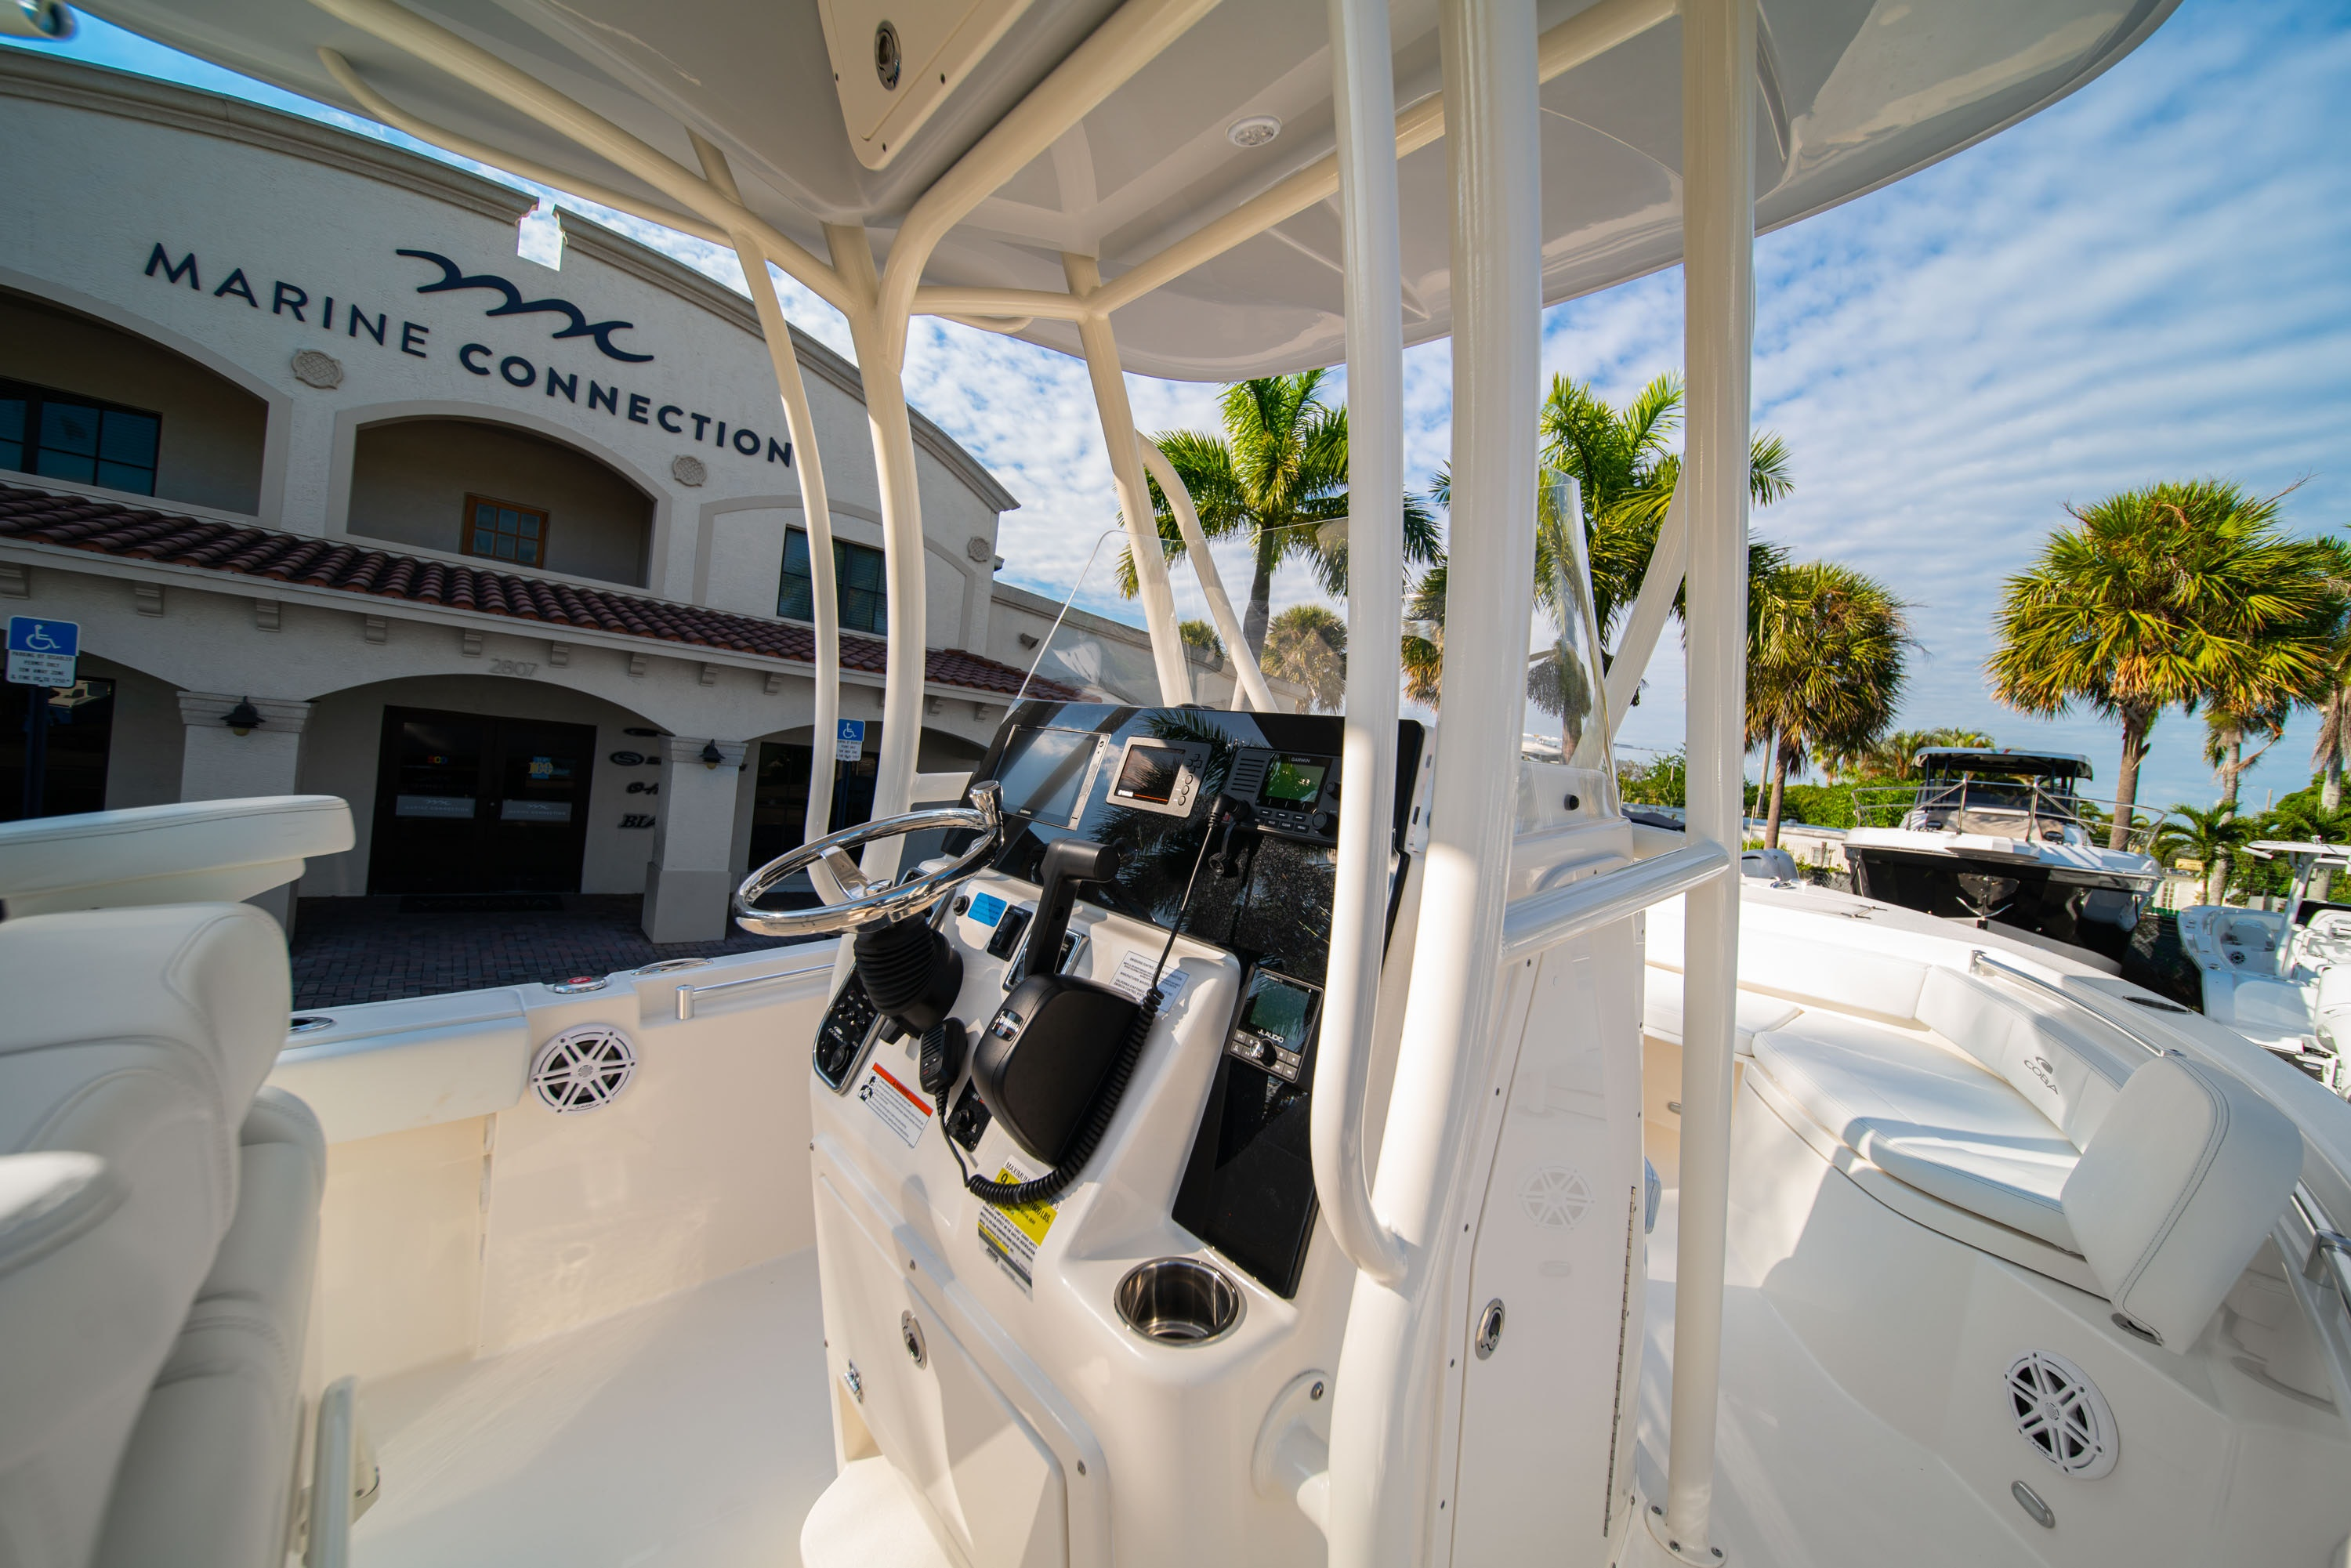 Thumbnail 19 for New 2020 Cobia 220 CC boat for sale in West Palm Beach, FL